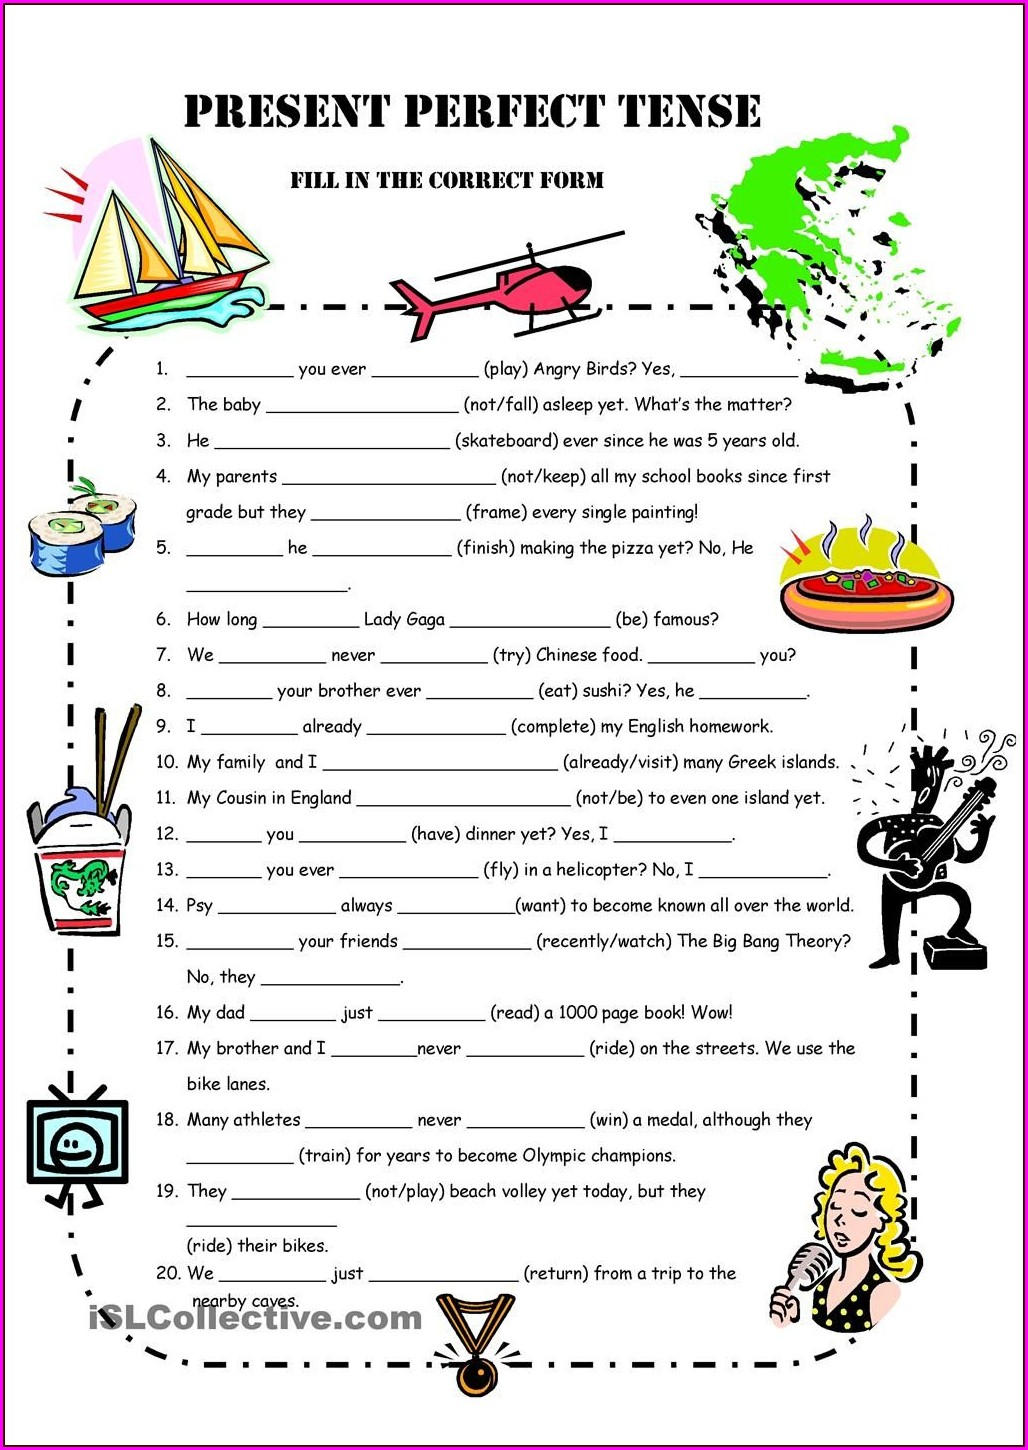 Present Tense Verbs Worksheet Grade 2 Worksheet Resume